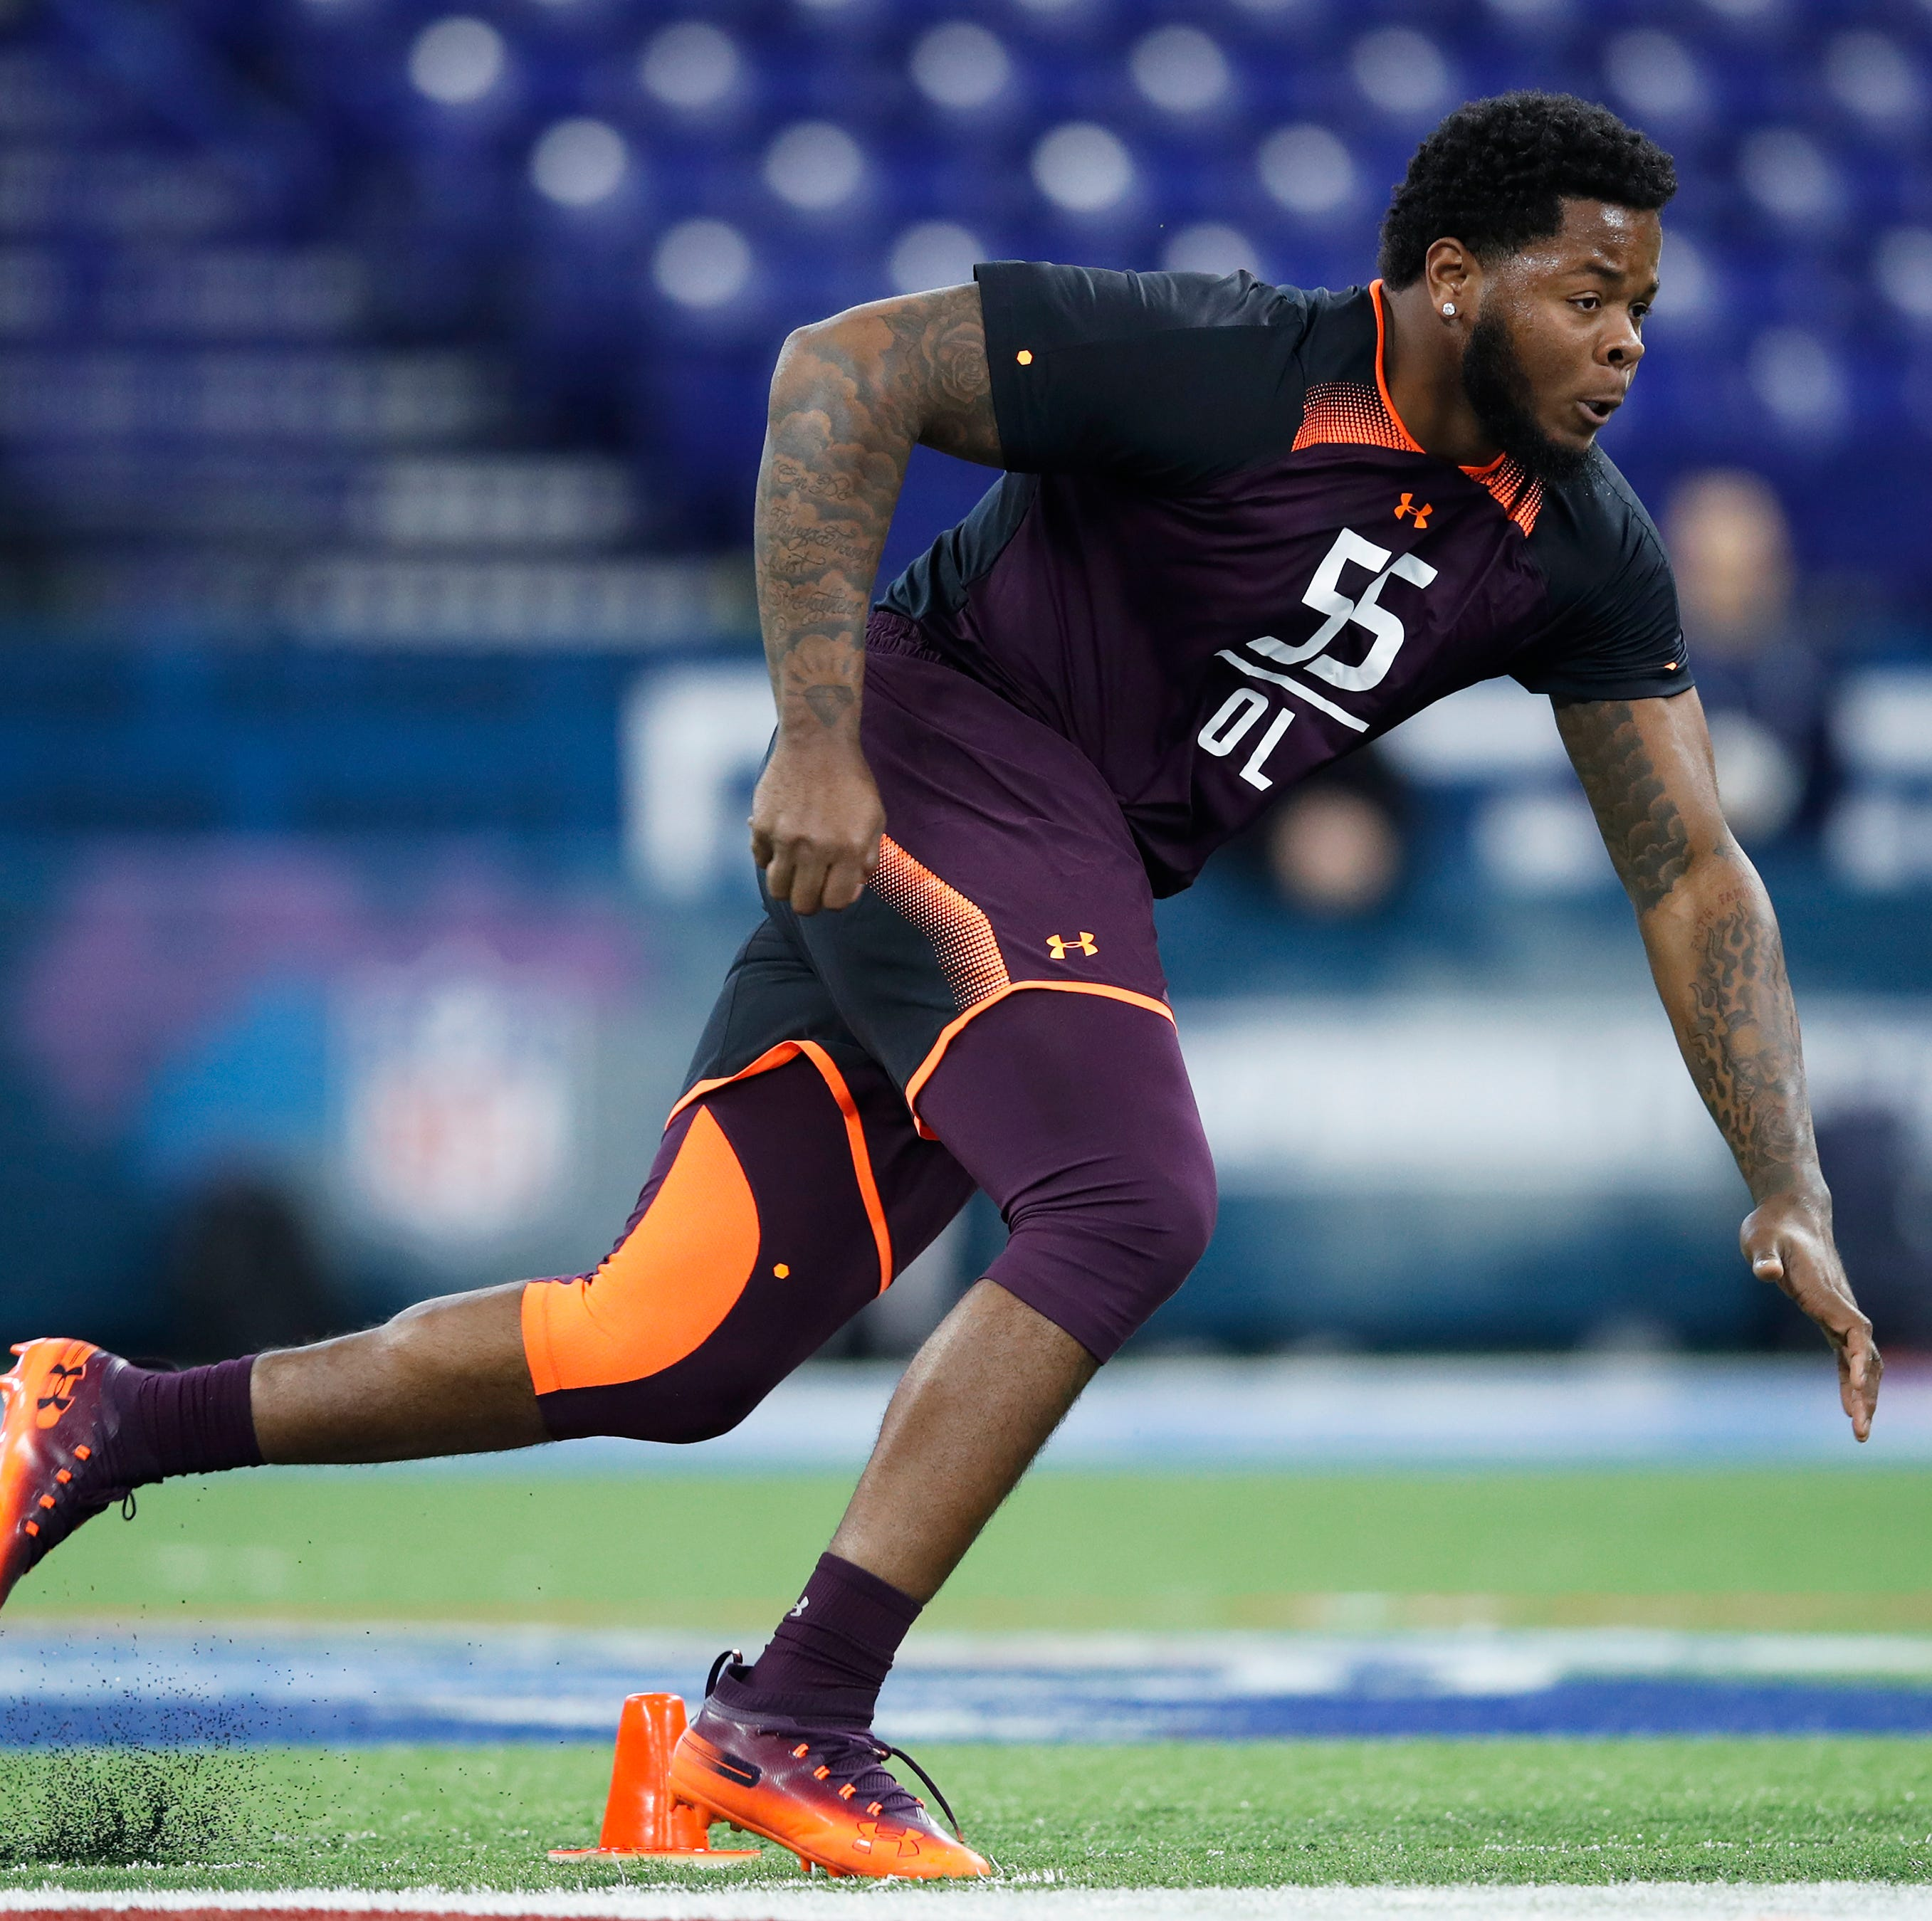 Brevard grads waiting for Friday's 2019 NFL Draft second, third rounds